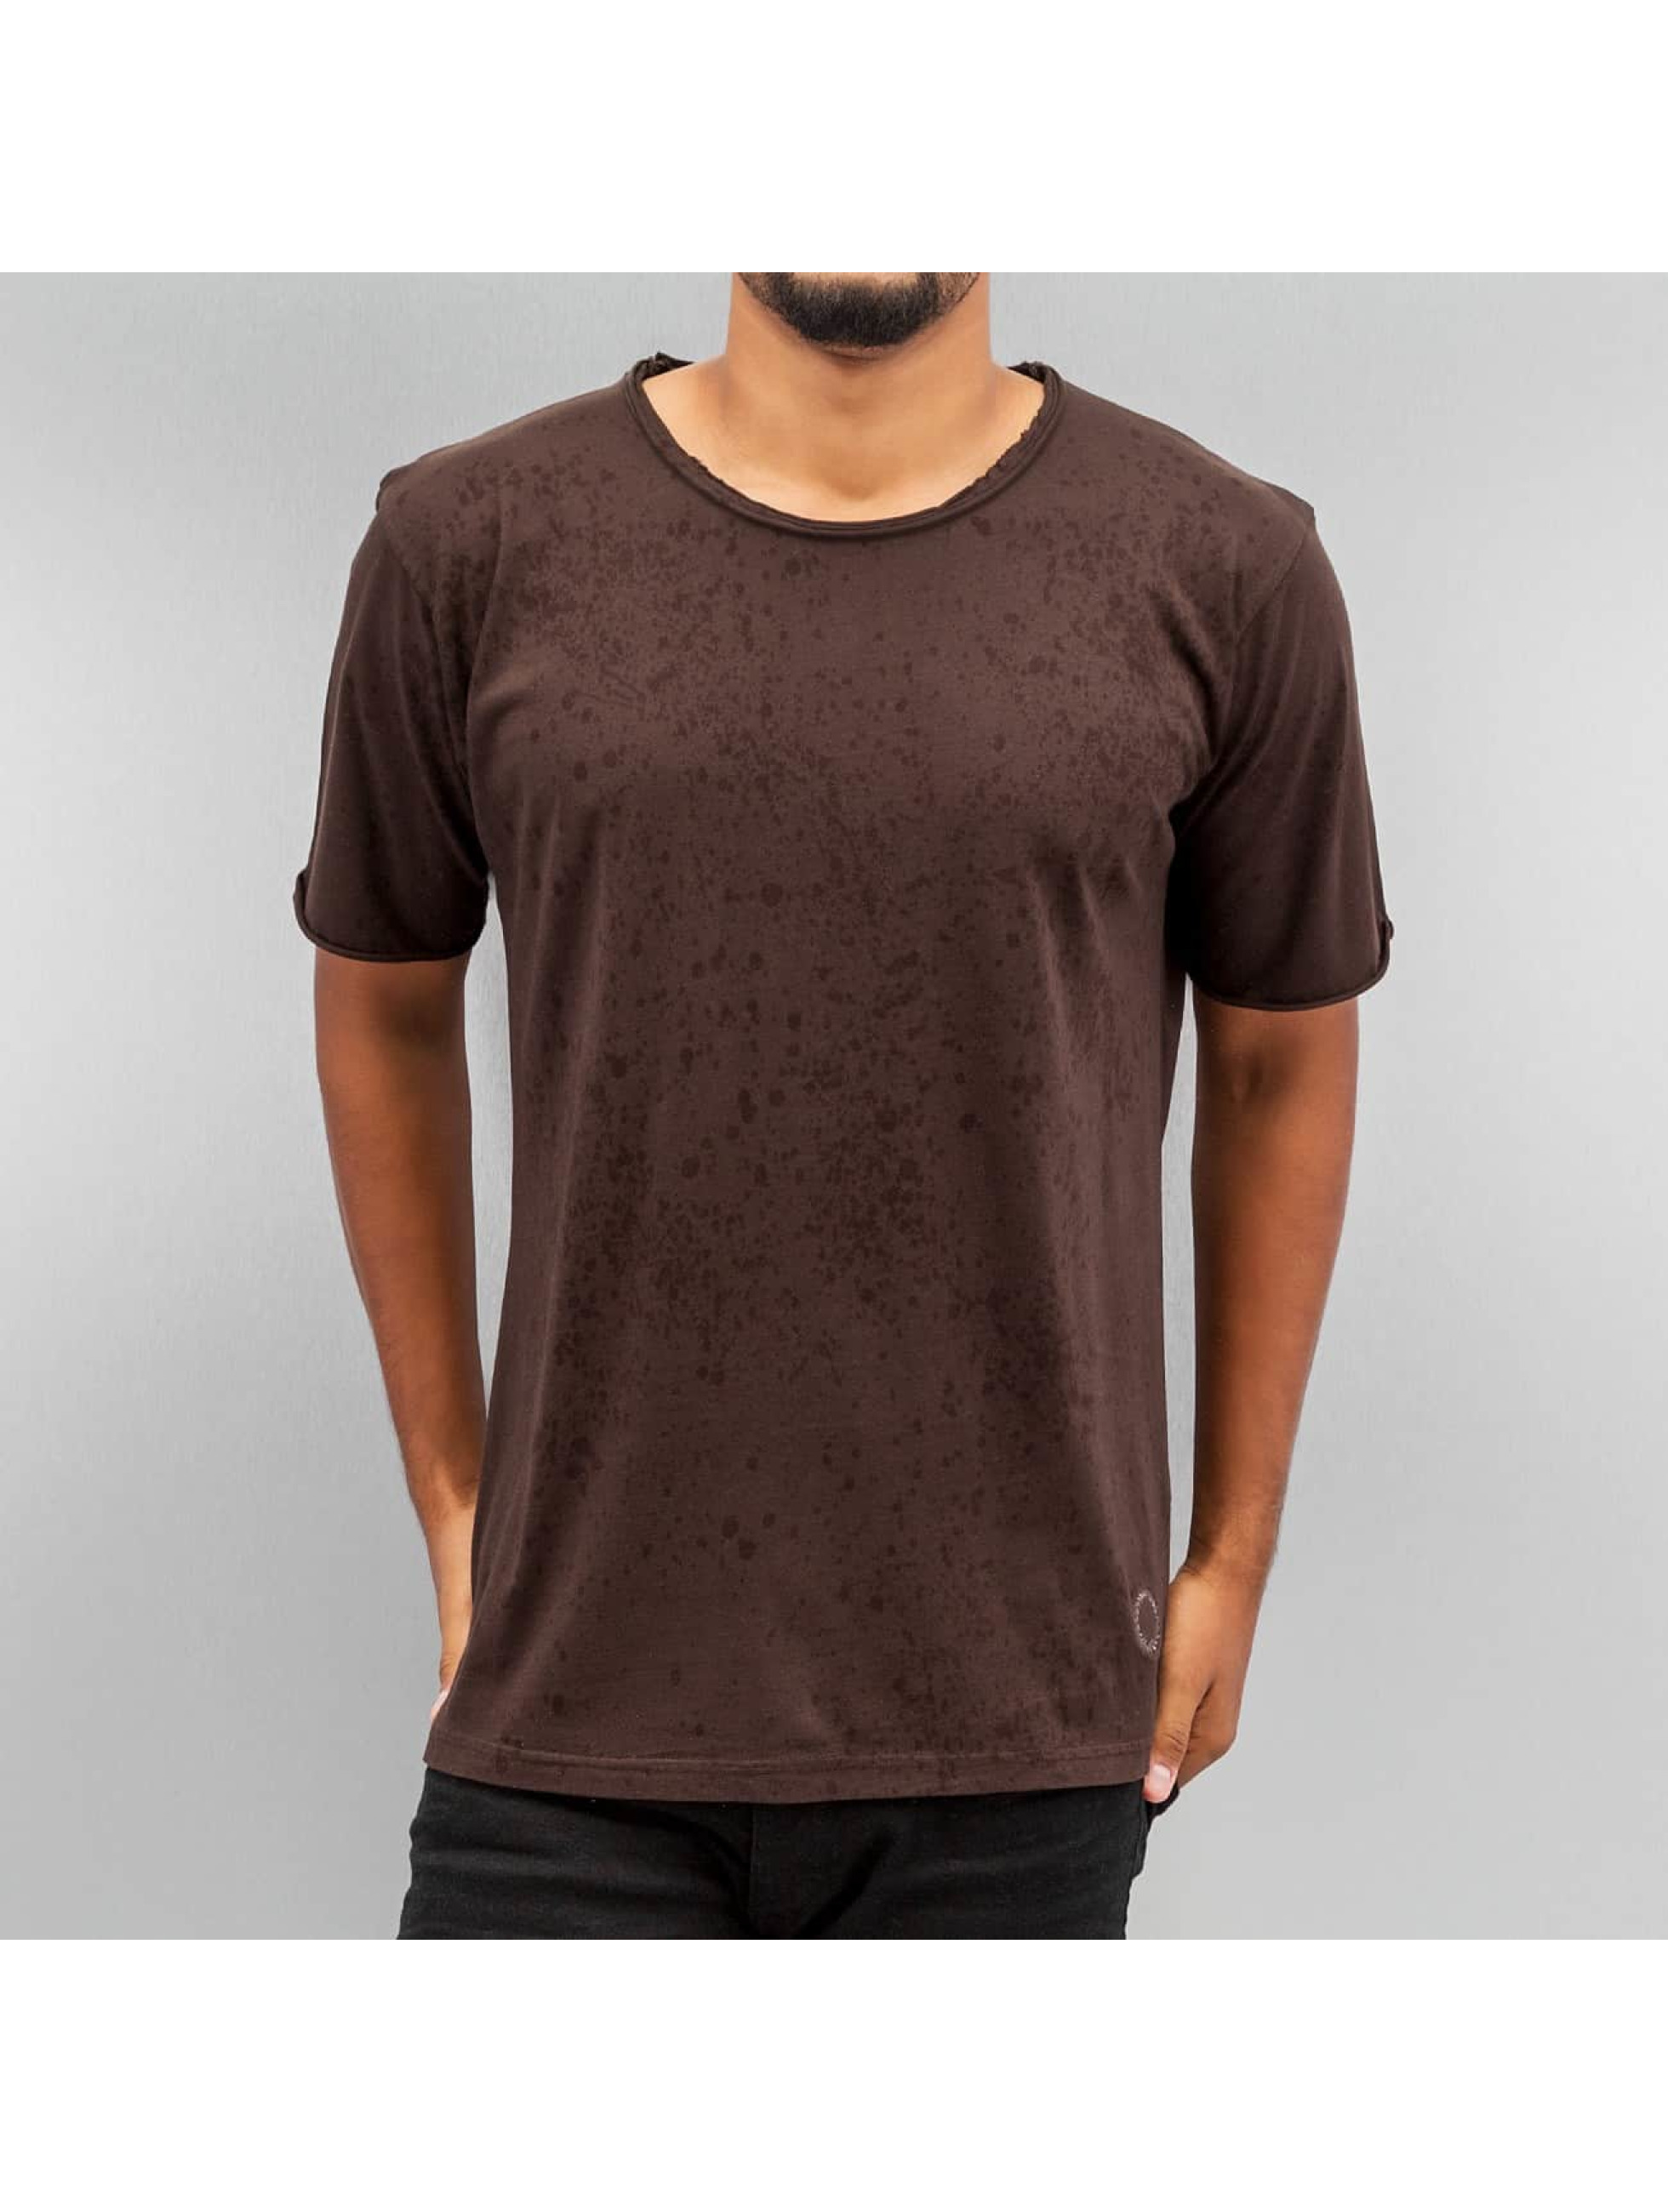 Yezz T-Shirt Splash braun